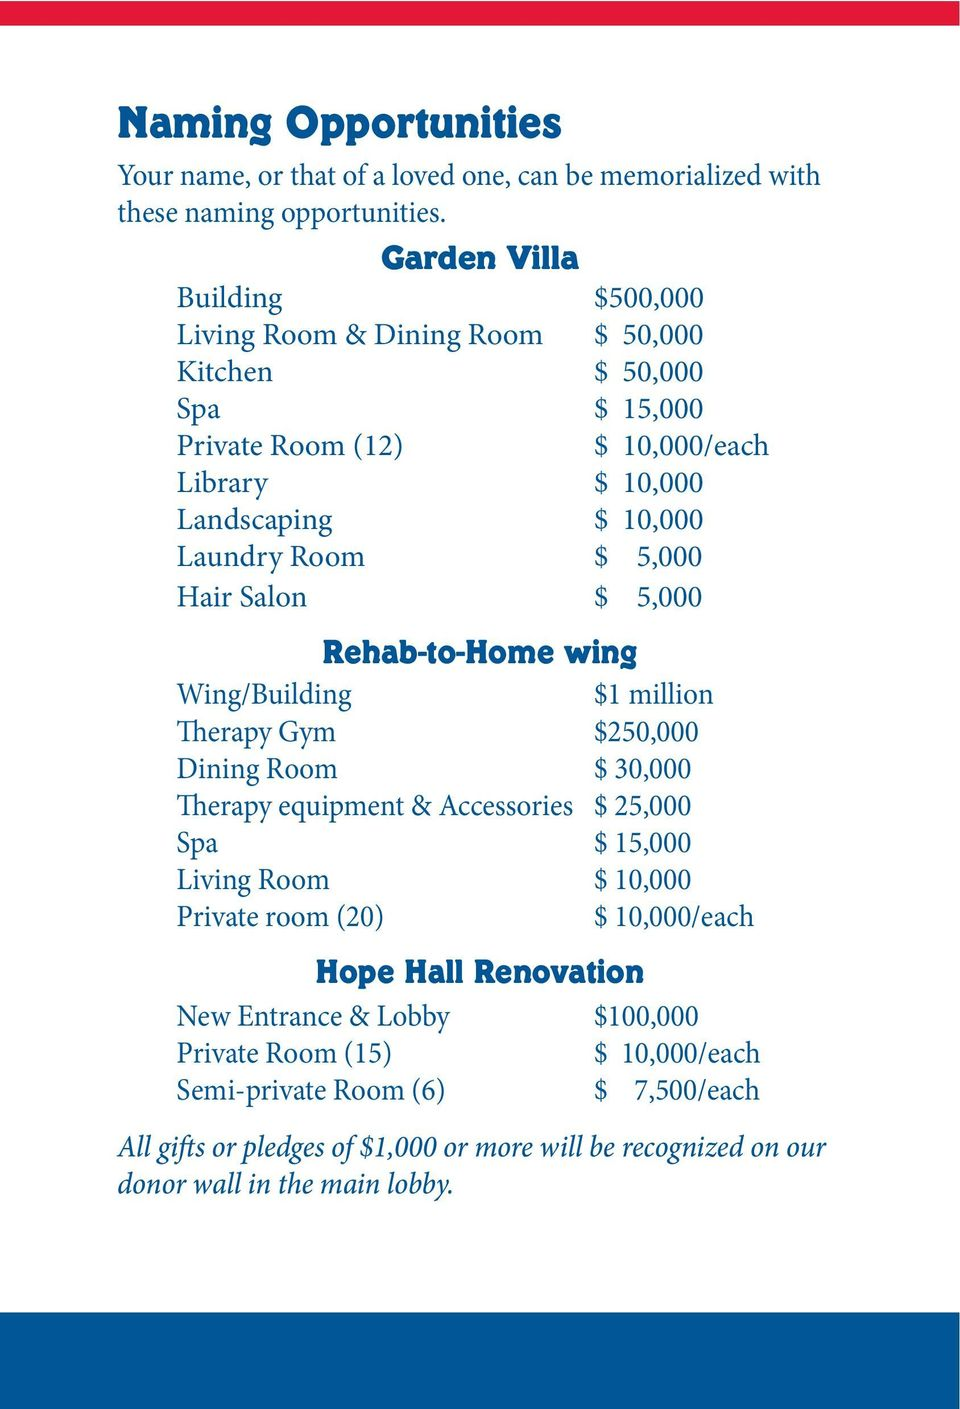 $ 5,000 Hair Salon $ 5,000 Rehab-to-Home wing Wing/Building $1 million Therapy Gym $250,000 Dining Room $ 30,000 Therapy equipment & Accessories $ 25,000 Spa $ 15,000 Living Room